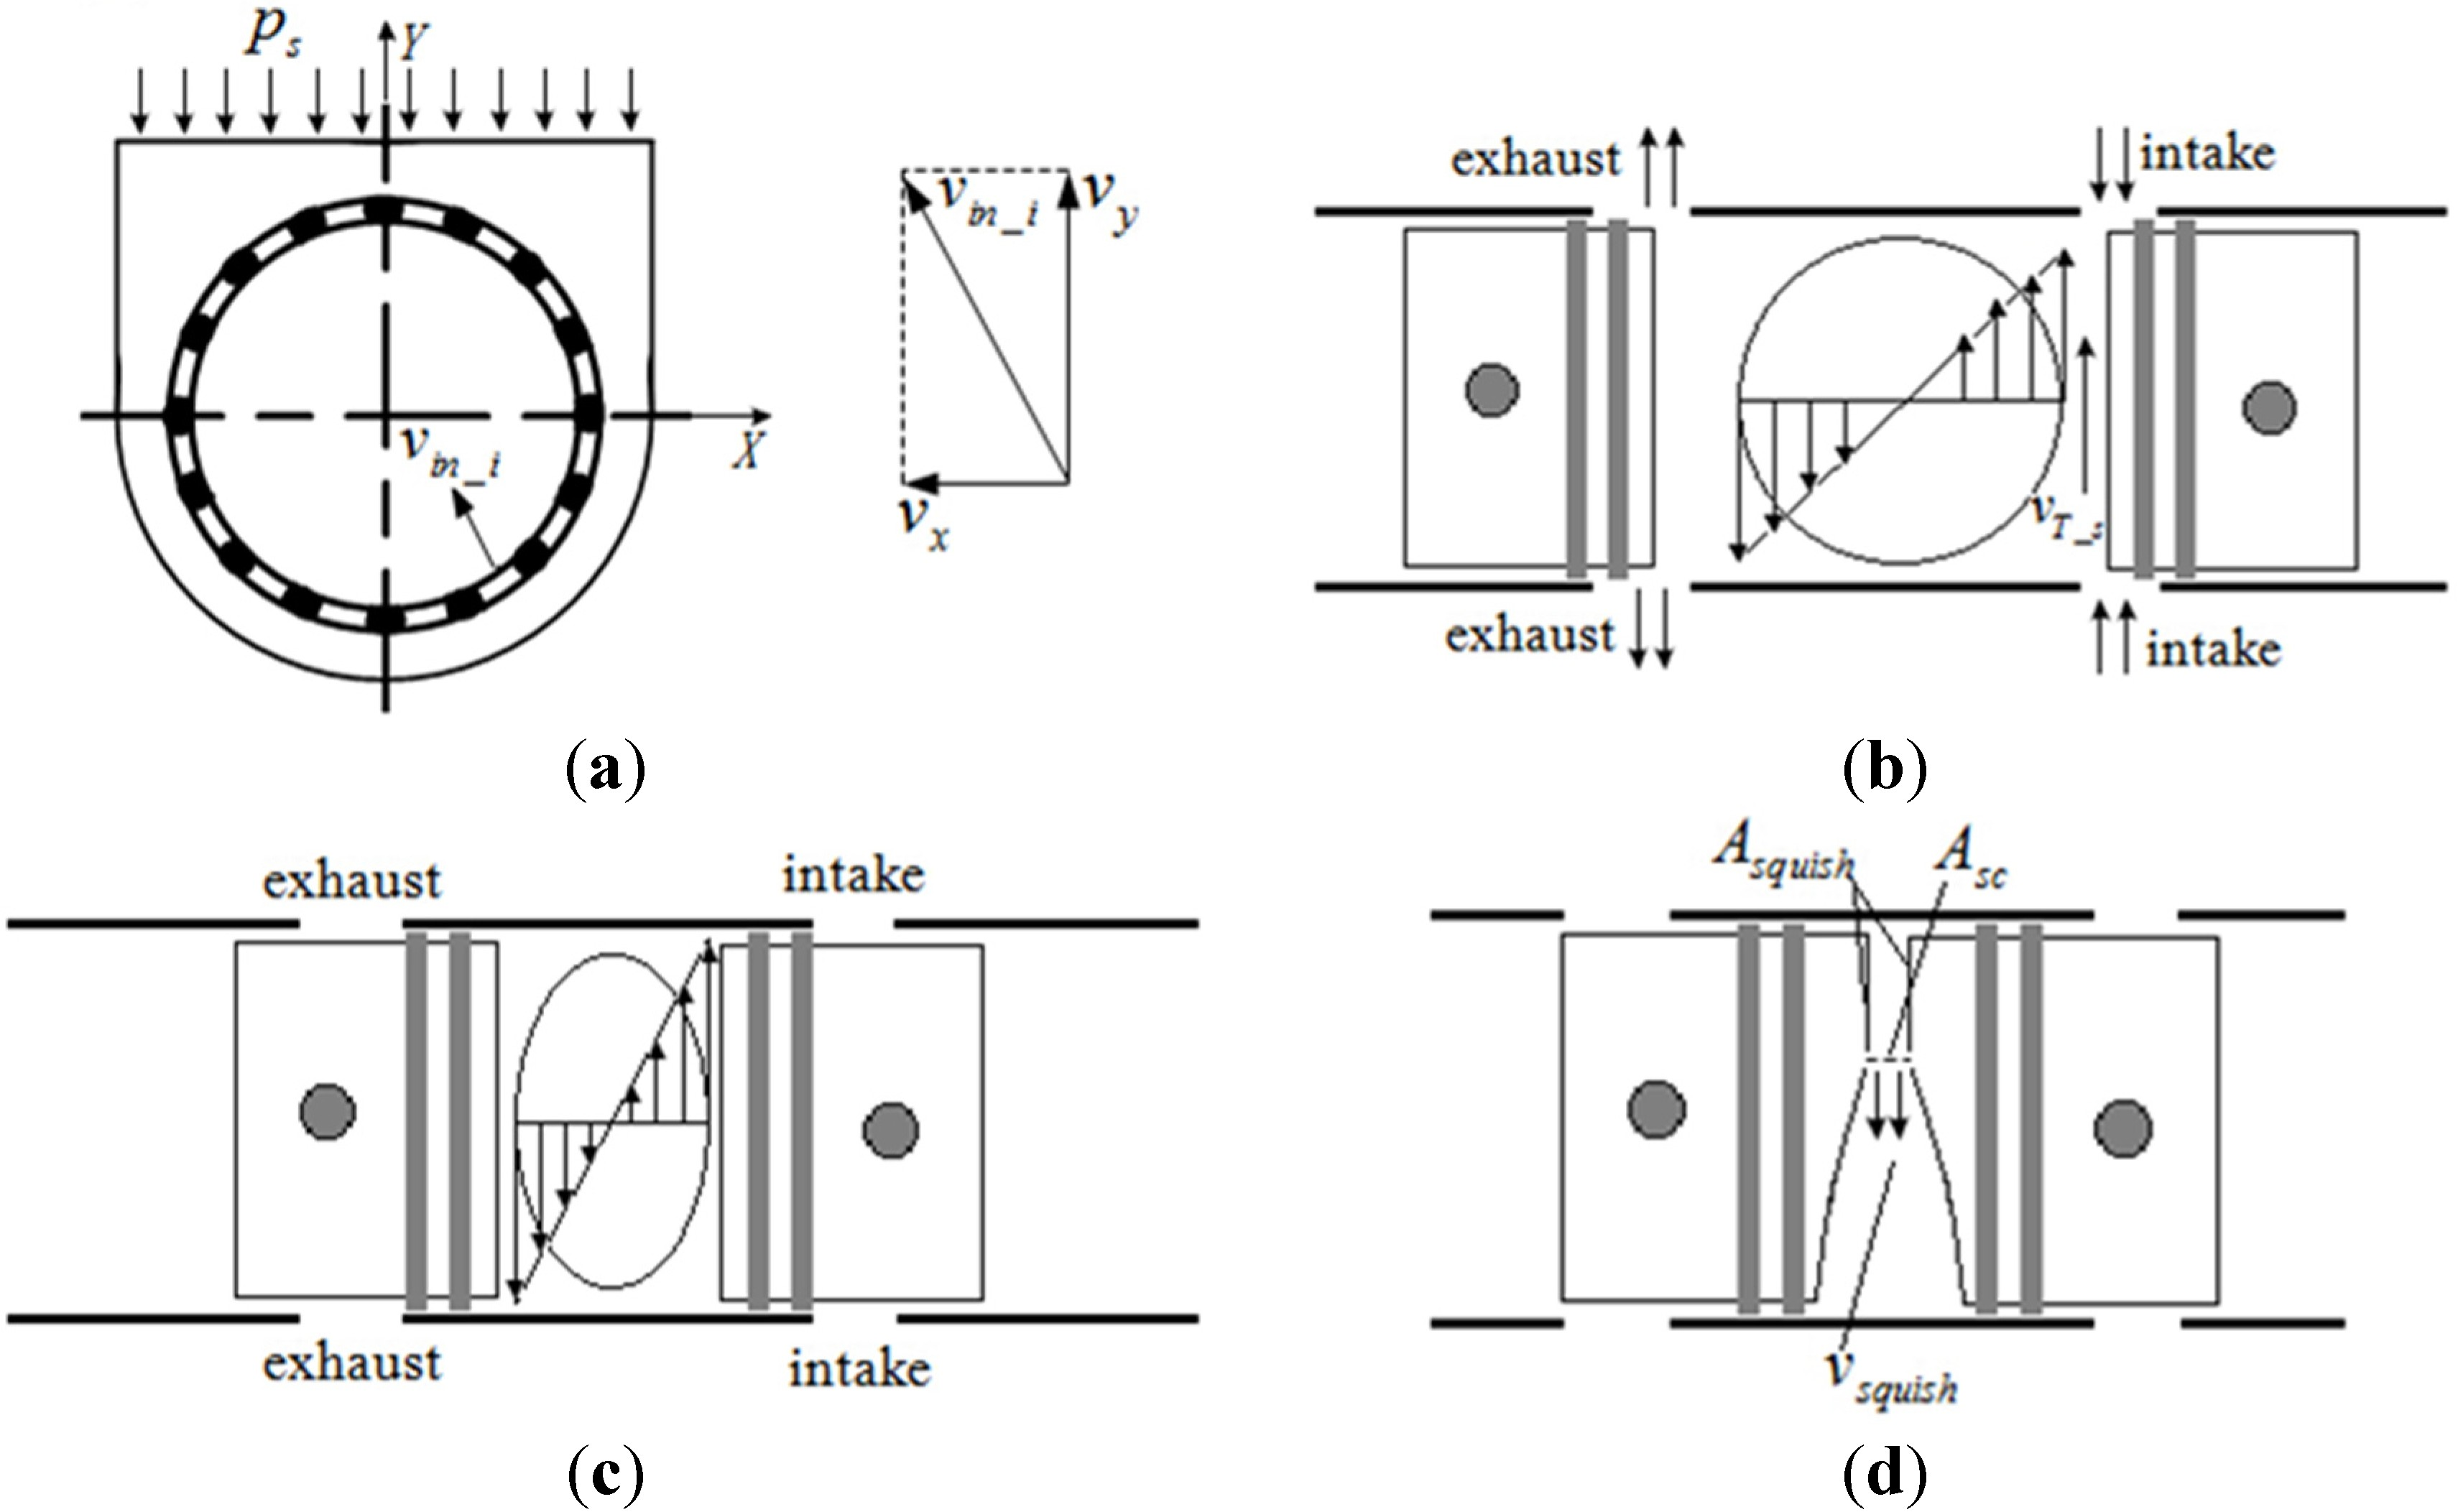 2 Cycle Engine Diagram Energies Free Full Text Of 2 Cycle Engine Diagram